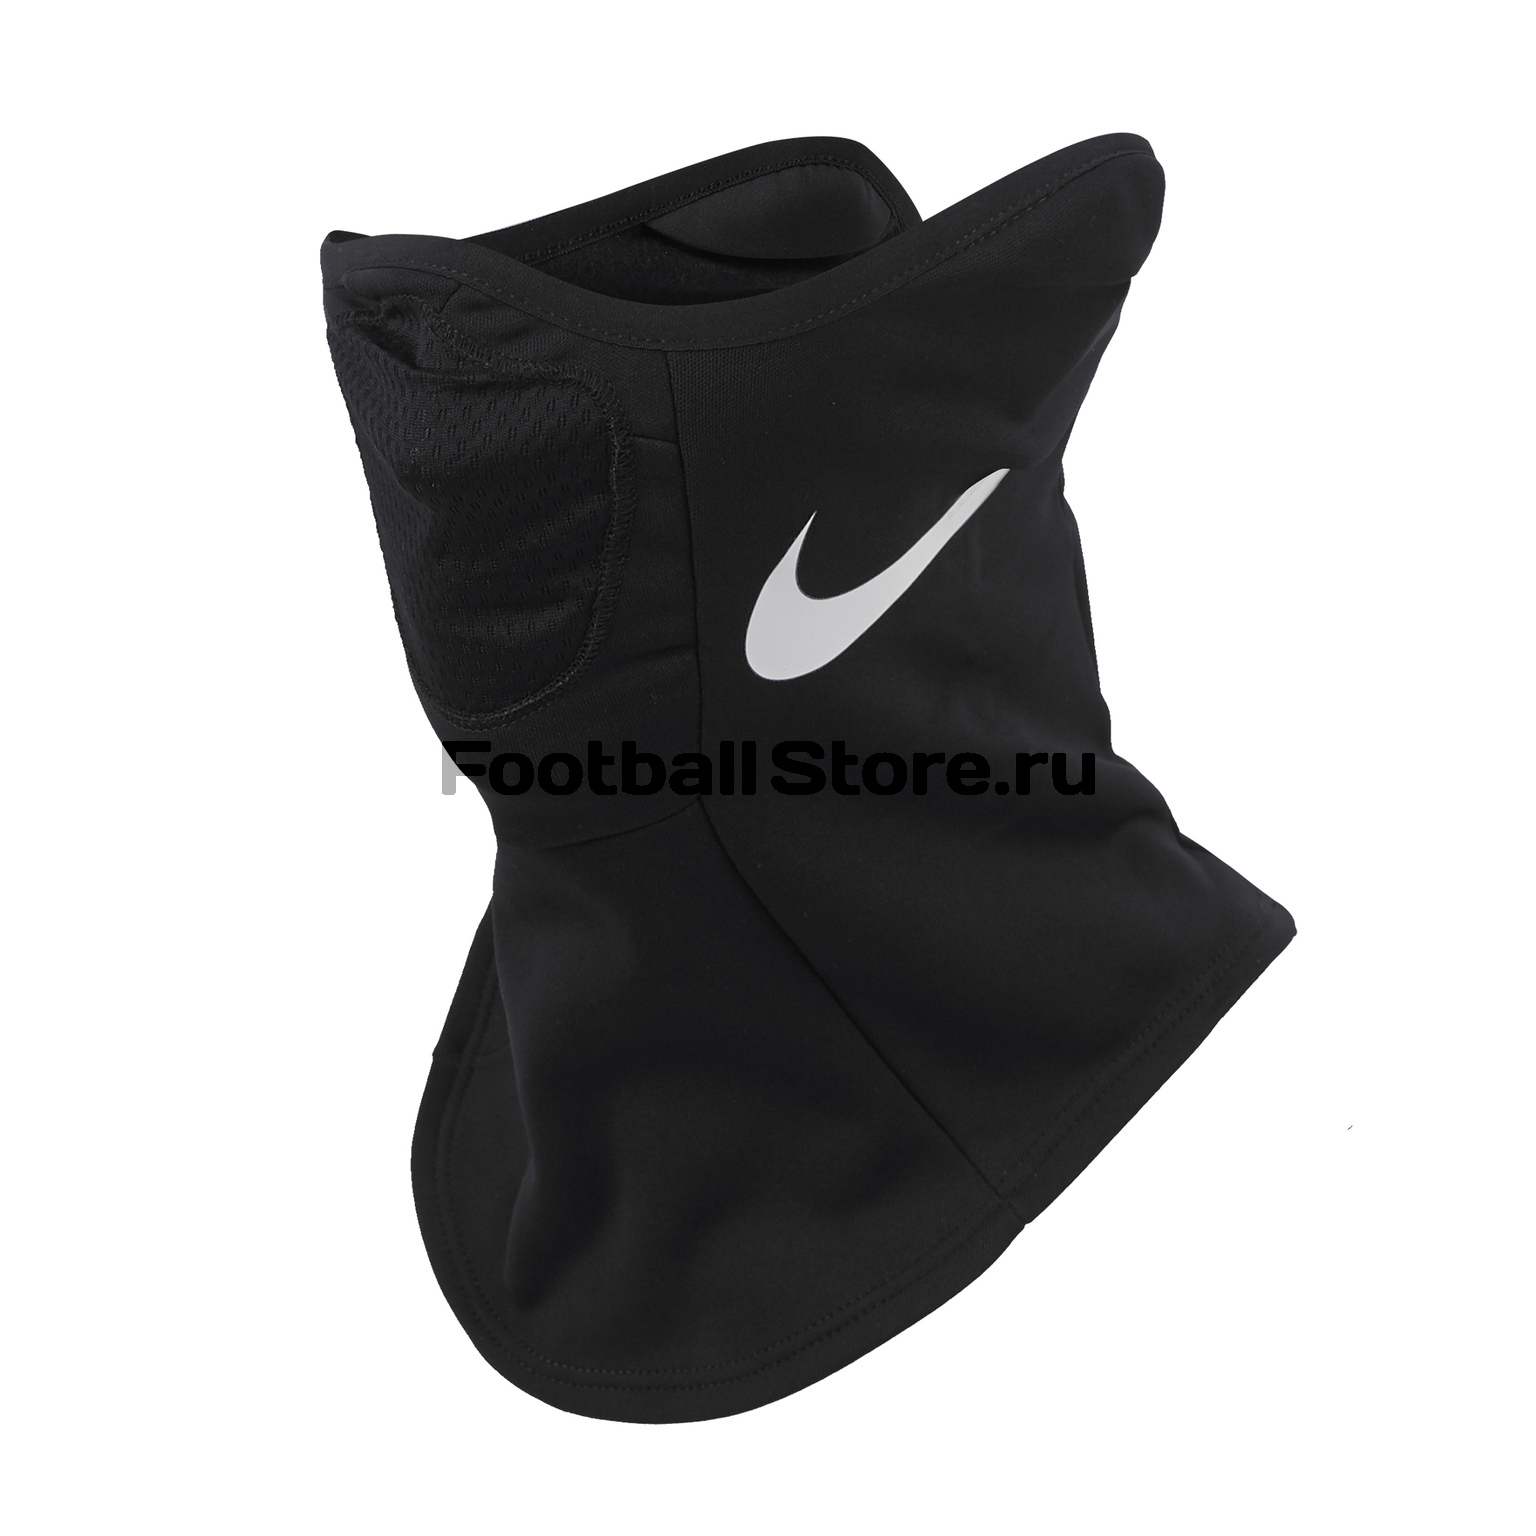 Повязка на шею Nike Strike Snood BQ5832-013 повязка на шею гейтор nike reversible neck warmer n wa 53 072 os